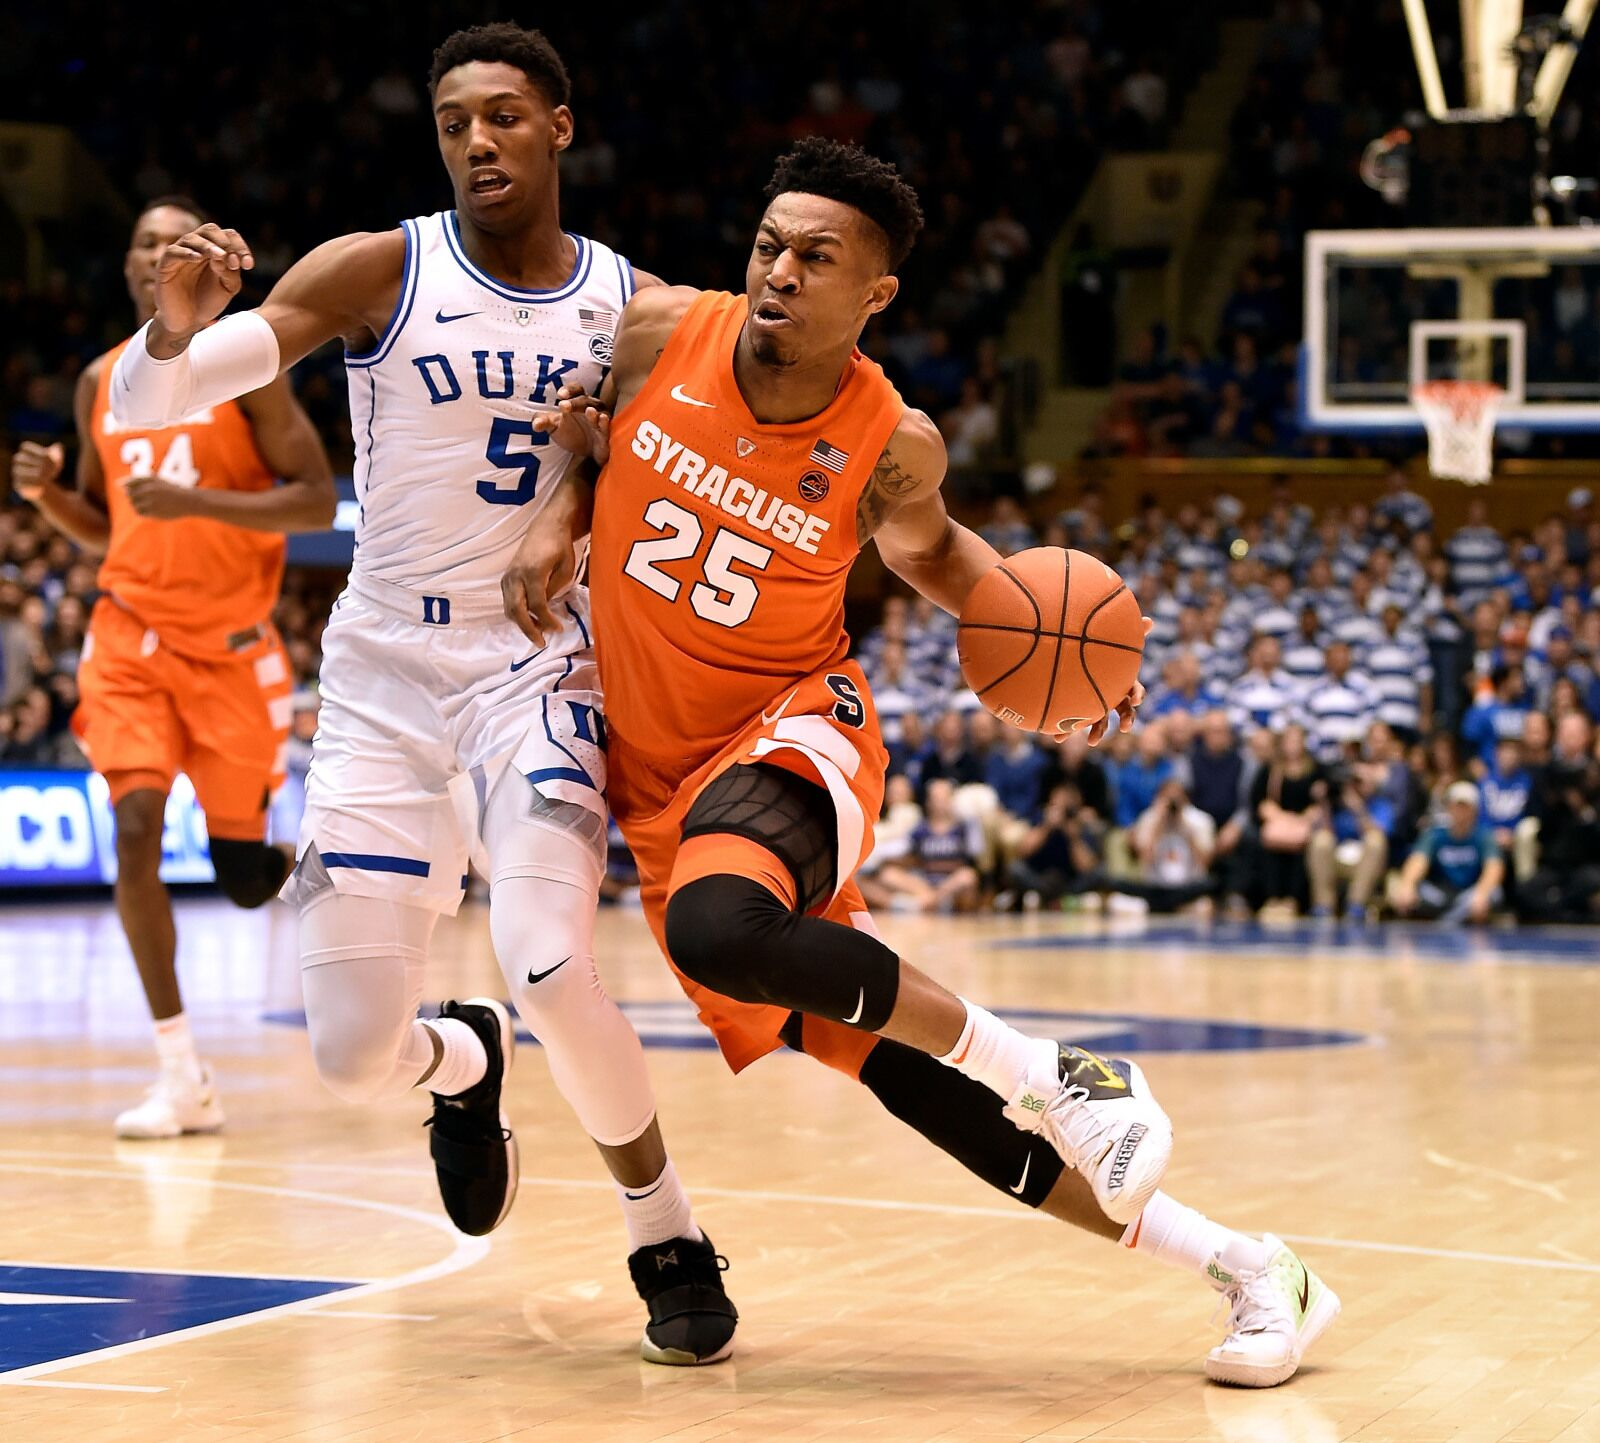 Duke Basketball Tyus Battle Still The Leader Of The Syracuse Orange